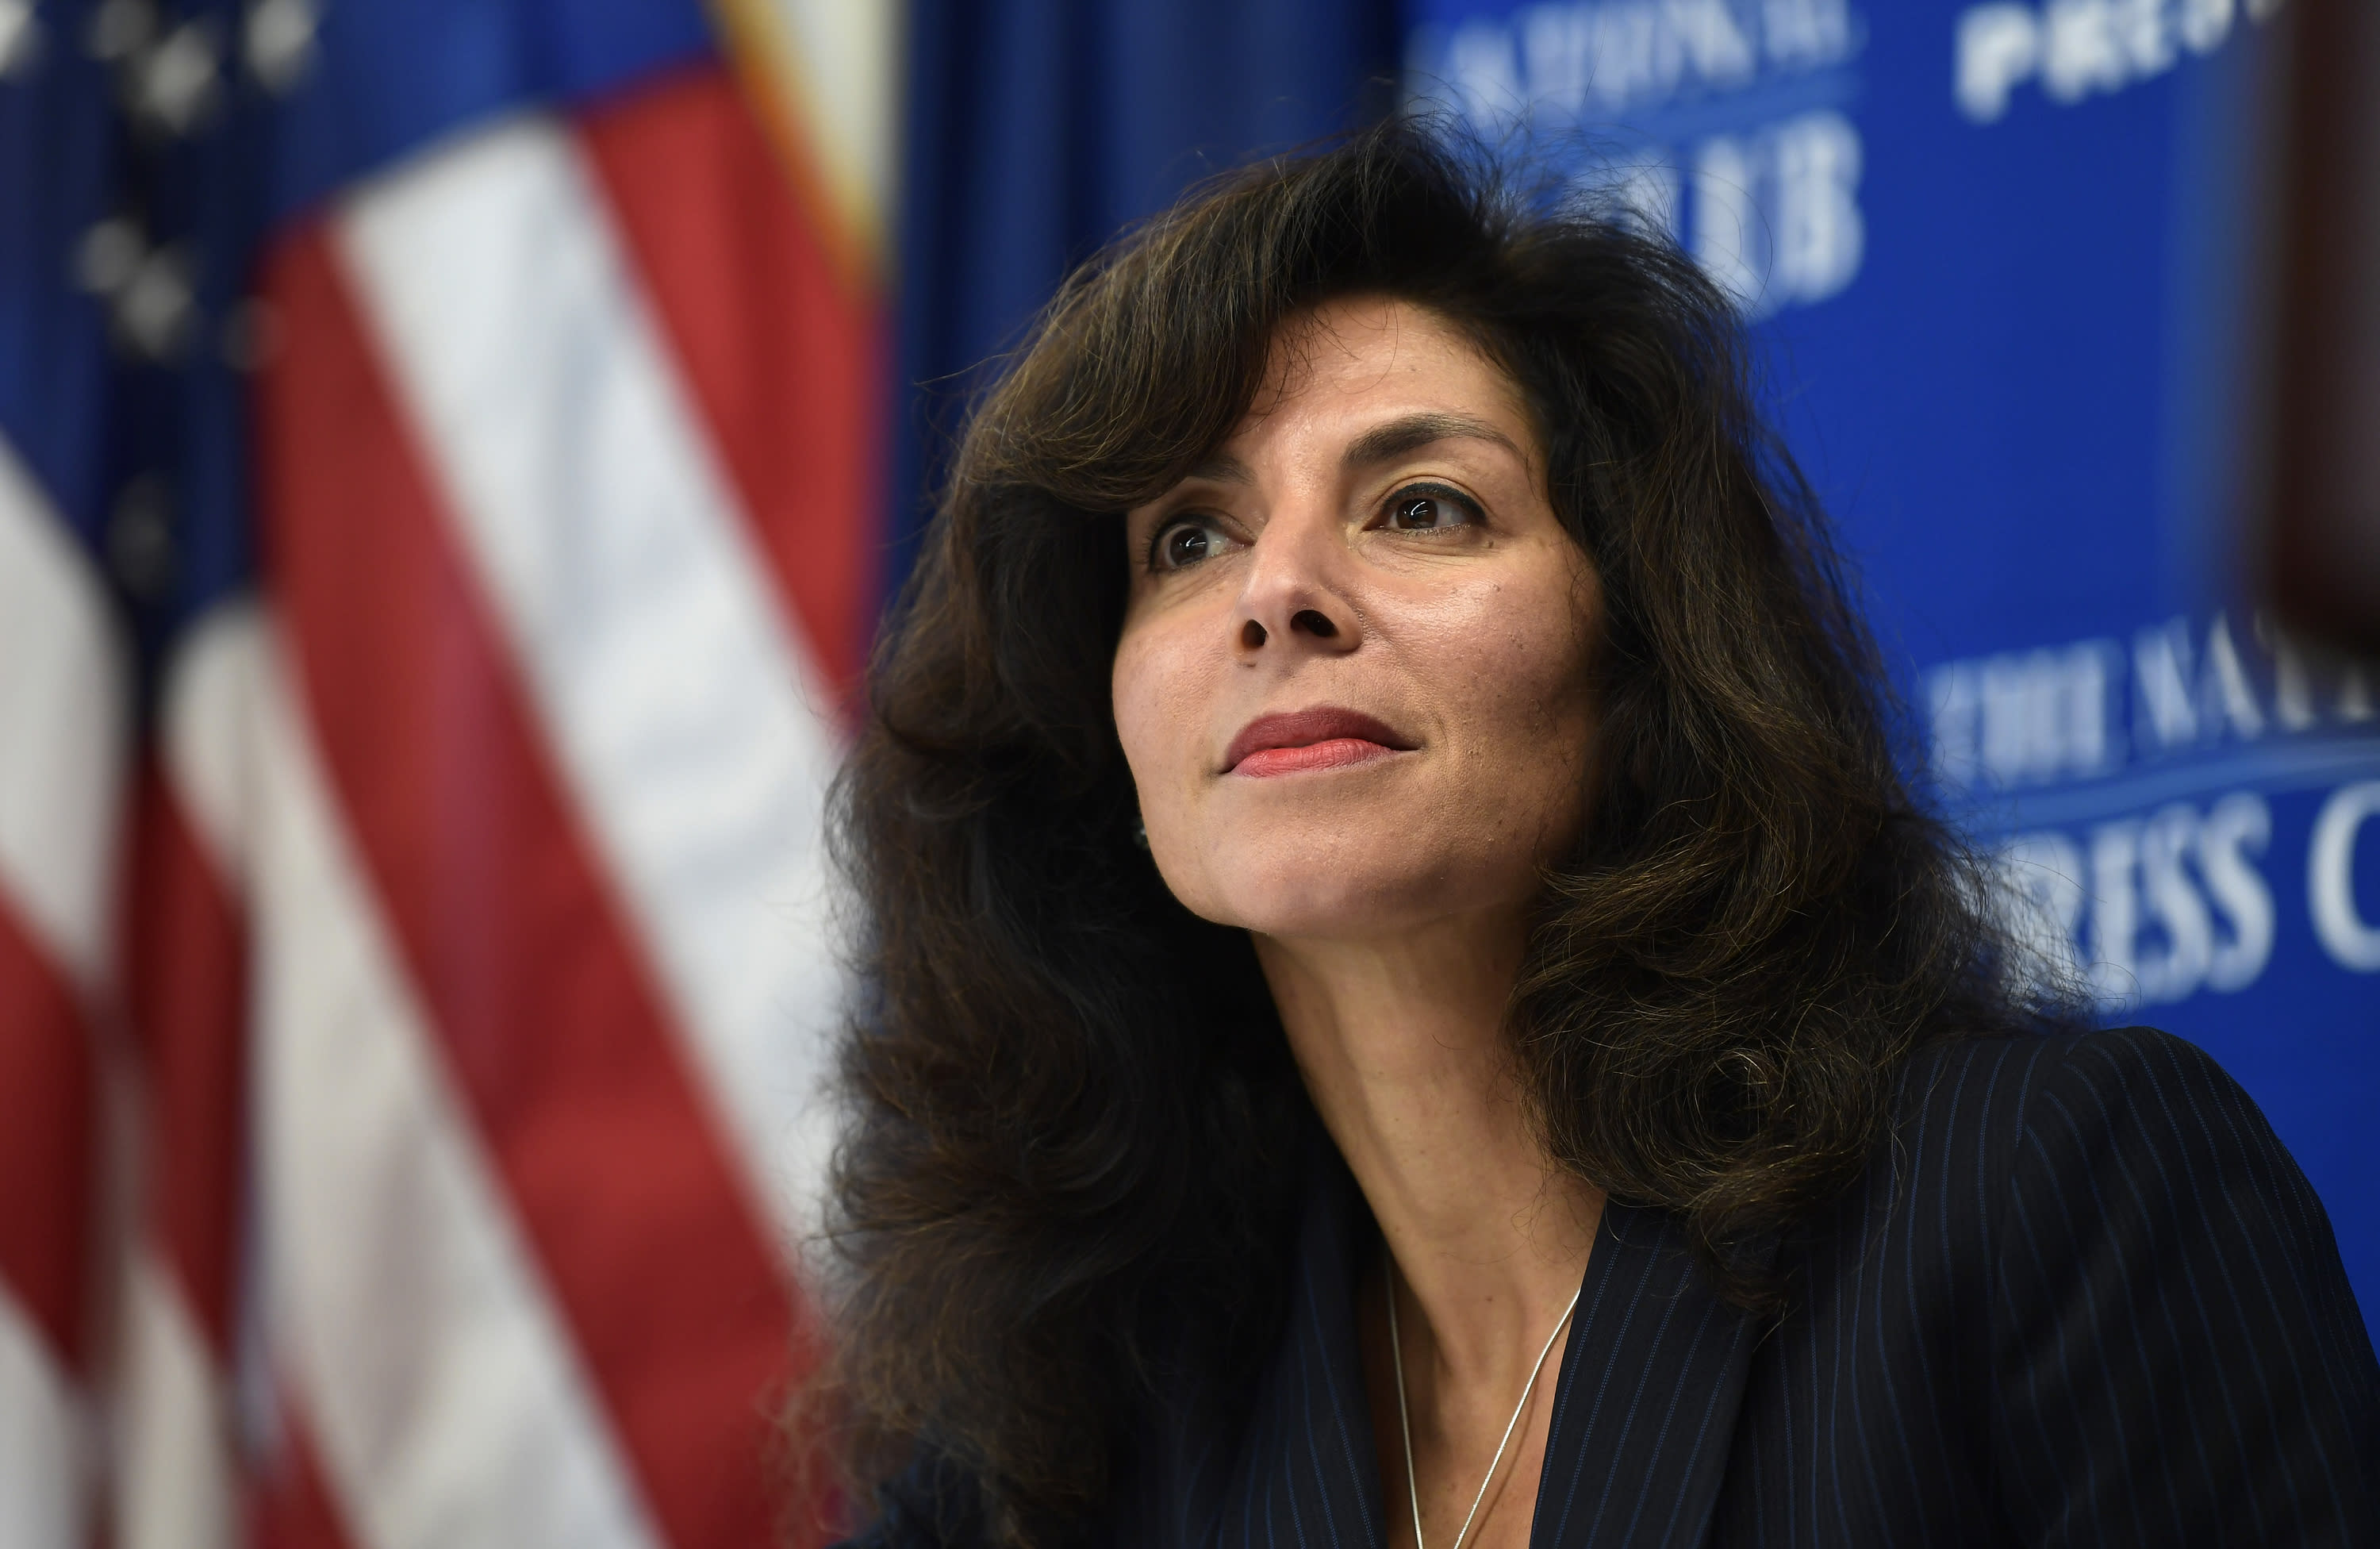 FILE - In this Sept. 21, 2018, file photo, A. Ashley Tabaddor, a federal immigration judge in Los Angeles who serves as the President of the National Association of Immigration Judges, listens as she is introduced to speak at the National Press Club in Washington, on the pressures on judges and the federal immigration court system. Immigration judges say they are being muzzled by the Trump administration and the union that represents them is suing the U.S. Department of Justice. The lawsuit filed Wednesday, July 1, 2020, is the latest confrontation between the judges and the Justice Department, which oversees U.S. immigration courts. (AP Photo/Susan Walsh, File)